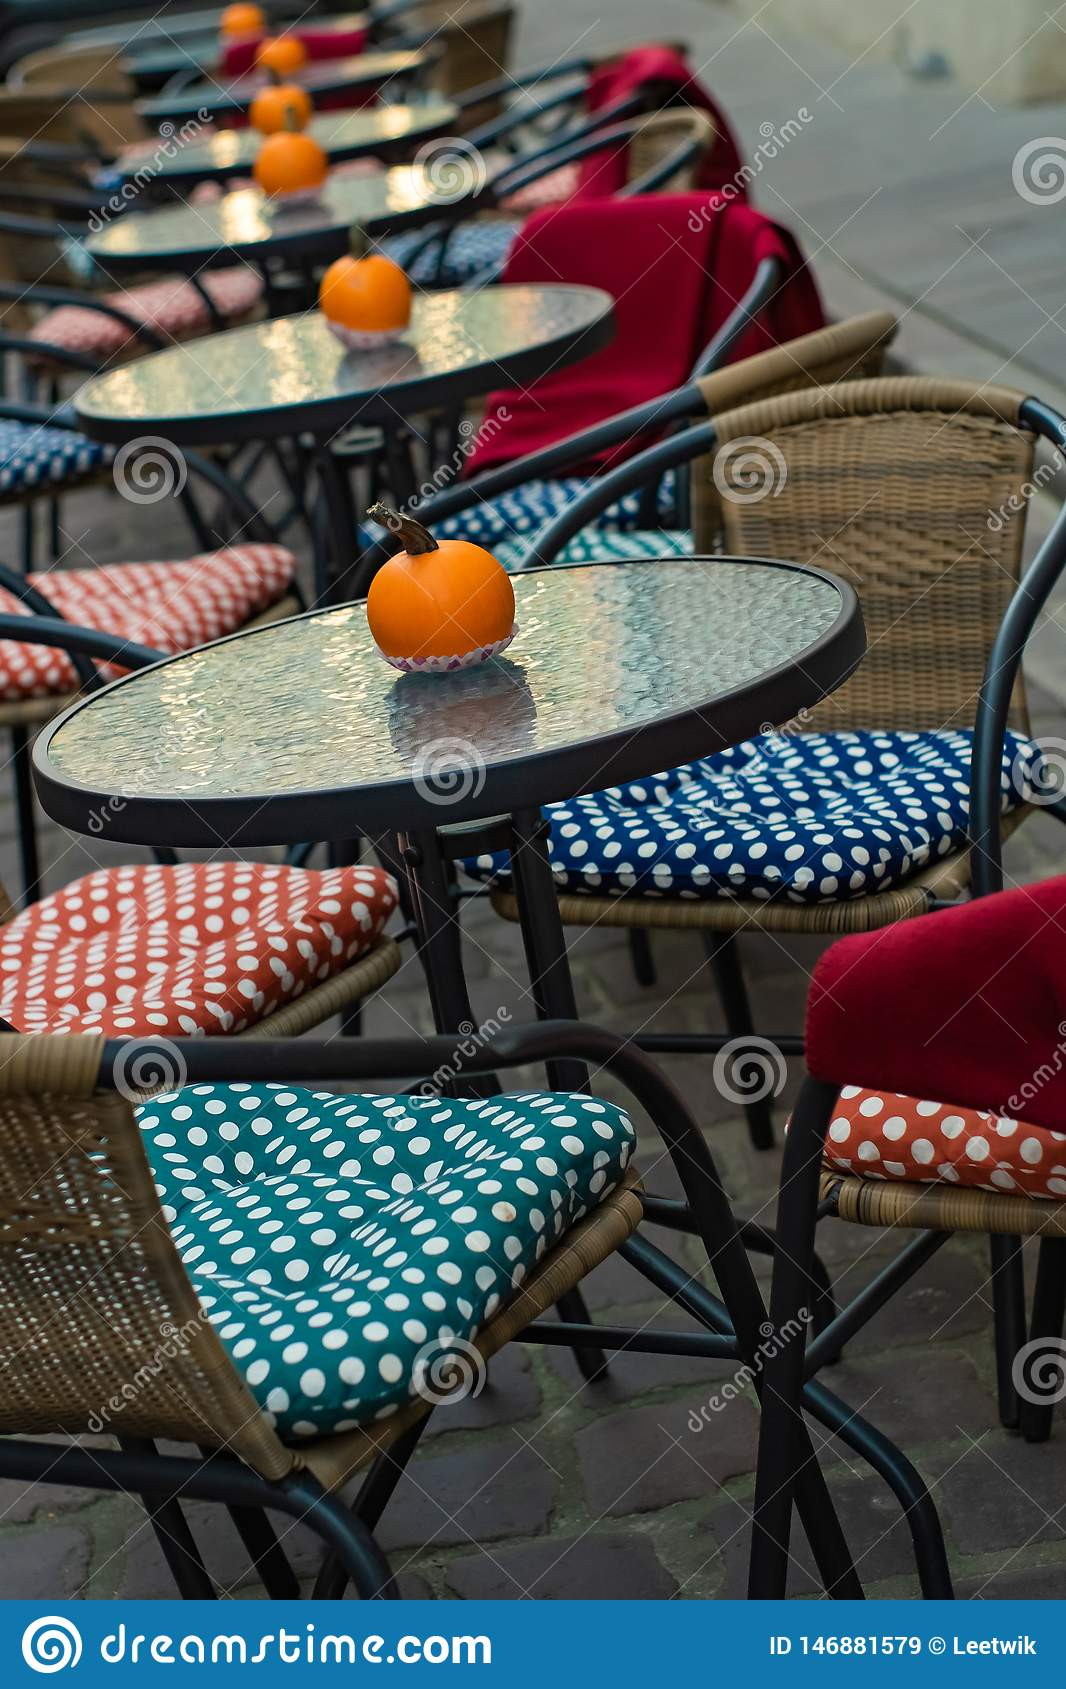 Glass tables of an outdoor cafe with pumpkins and colored cushions of chairs